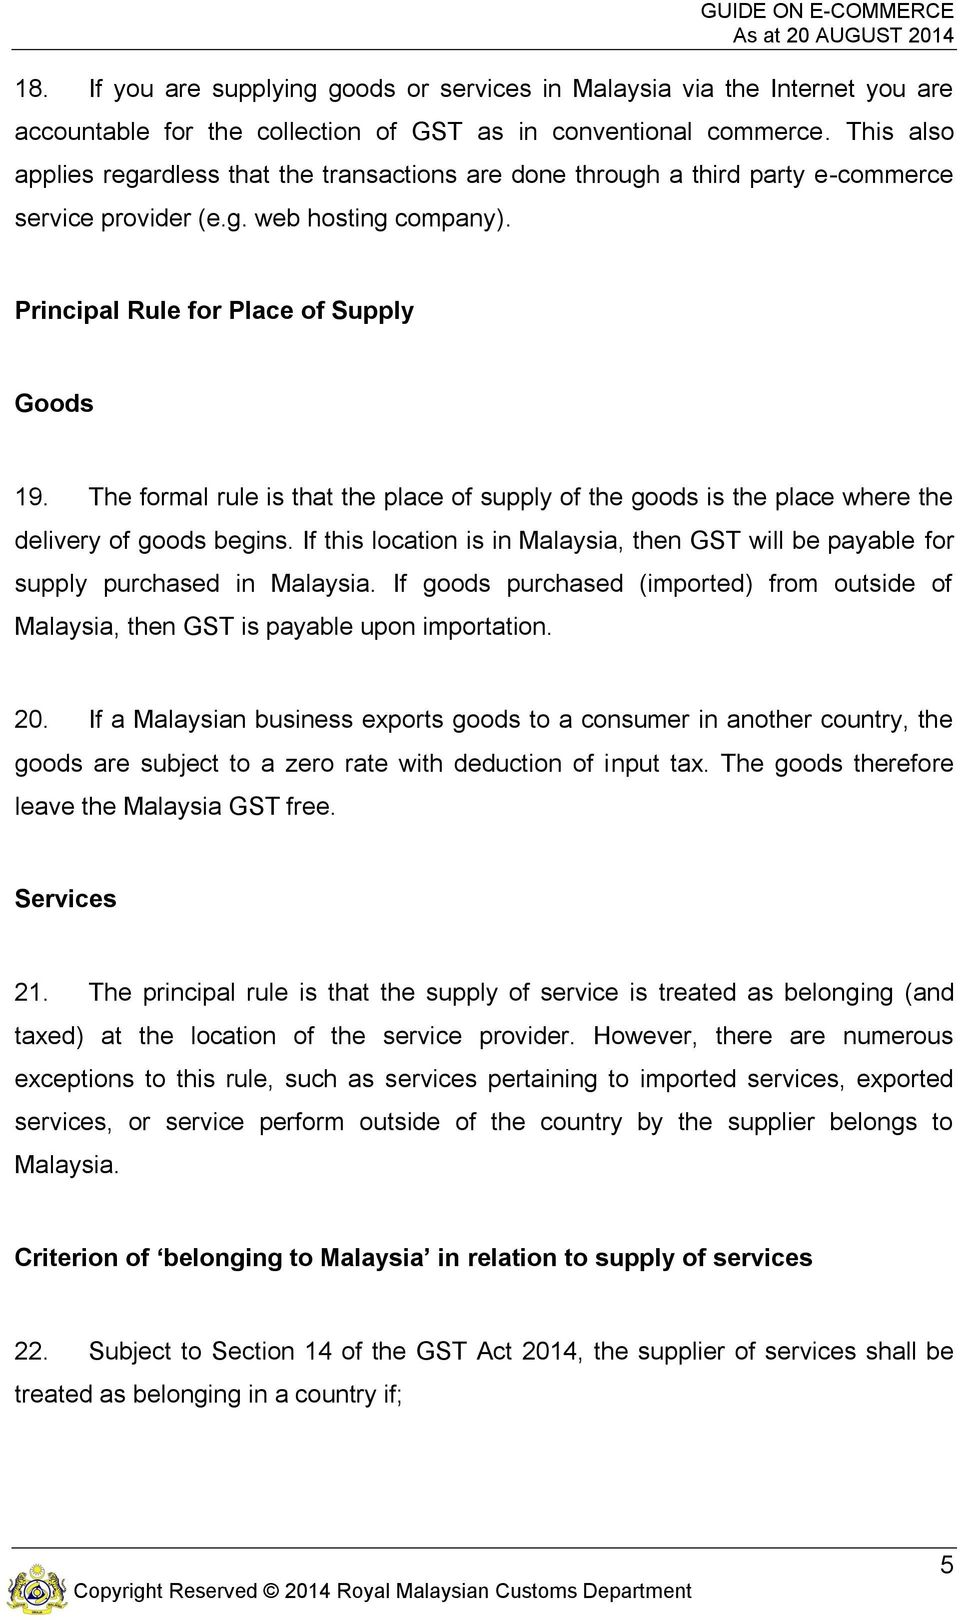 The formal rule is that the place of supply of the goods is the place where the delivery of goods begins. If this location is in Malaysia, then GST will be payable for supply purchased in Malaysia.